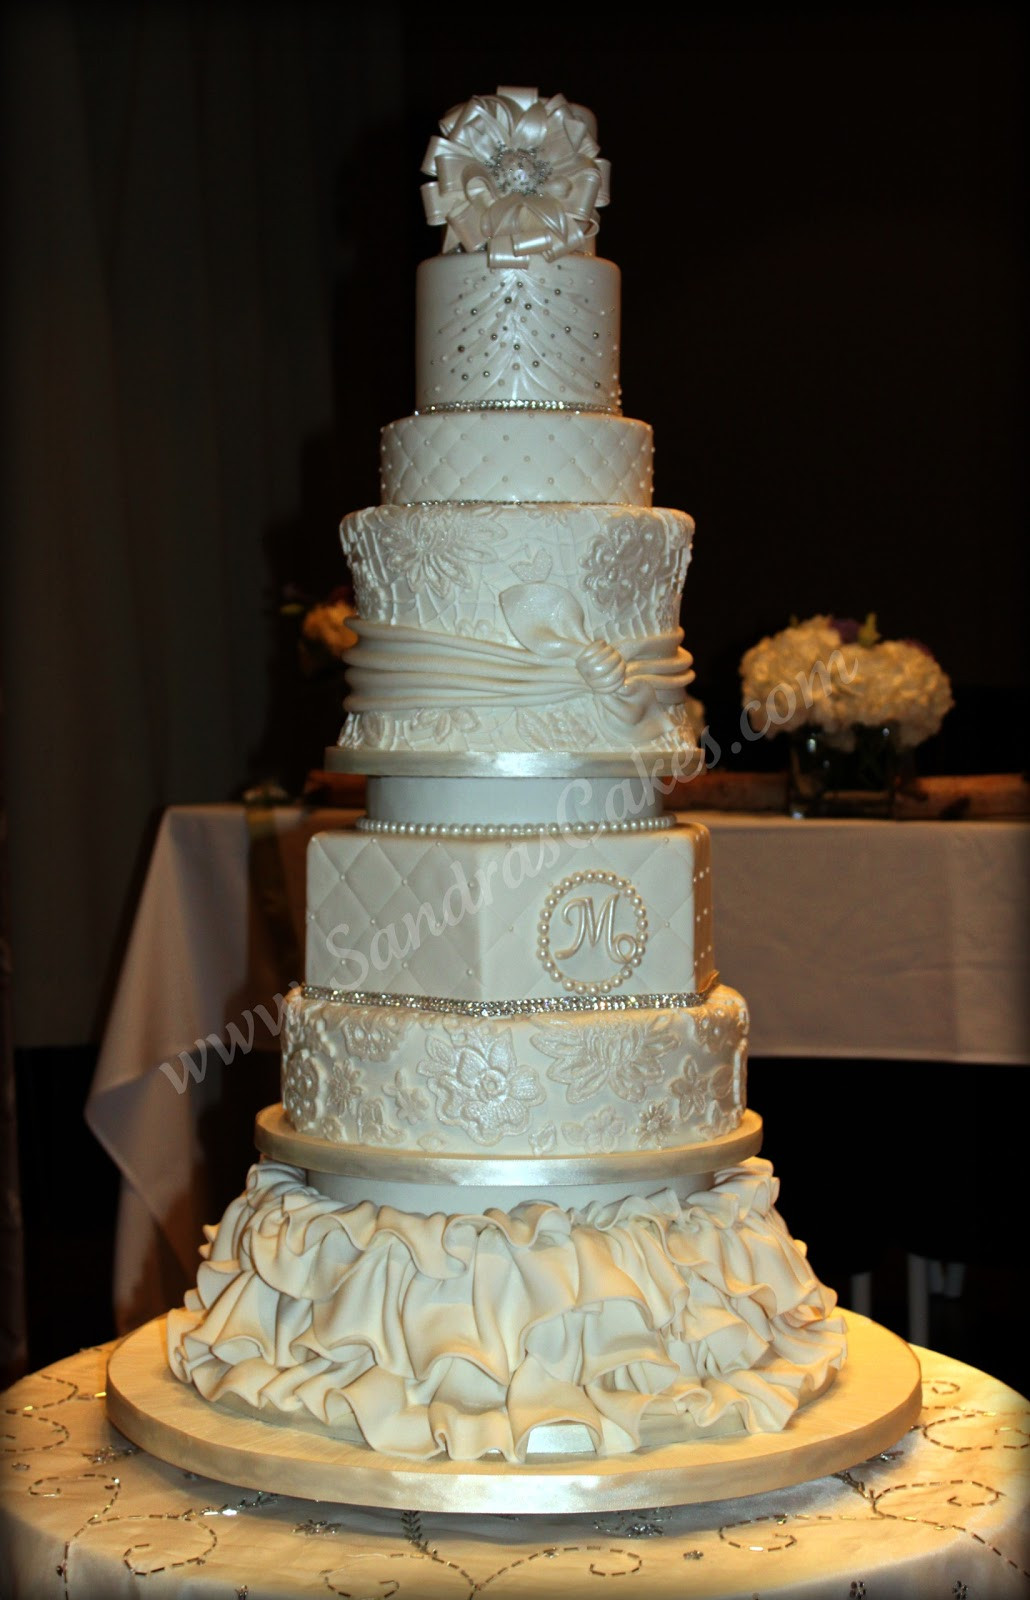 Royalty Wedding Cakes  OUR WEDDING CAKES EDIBLE WORKS OF ART